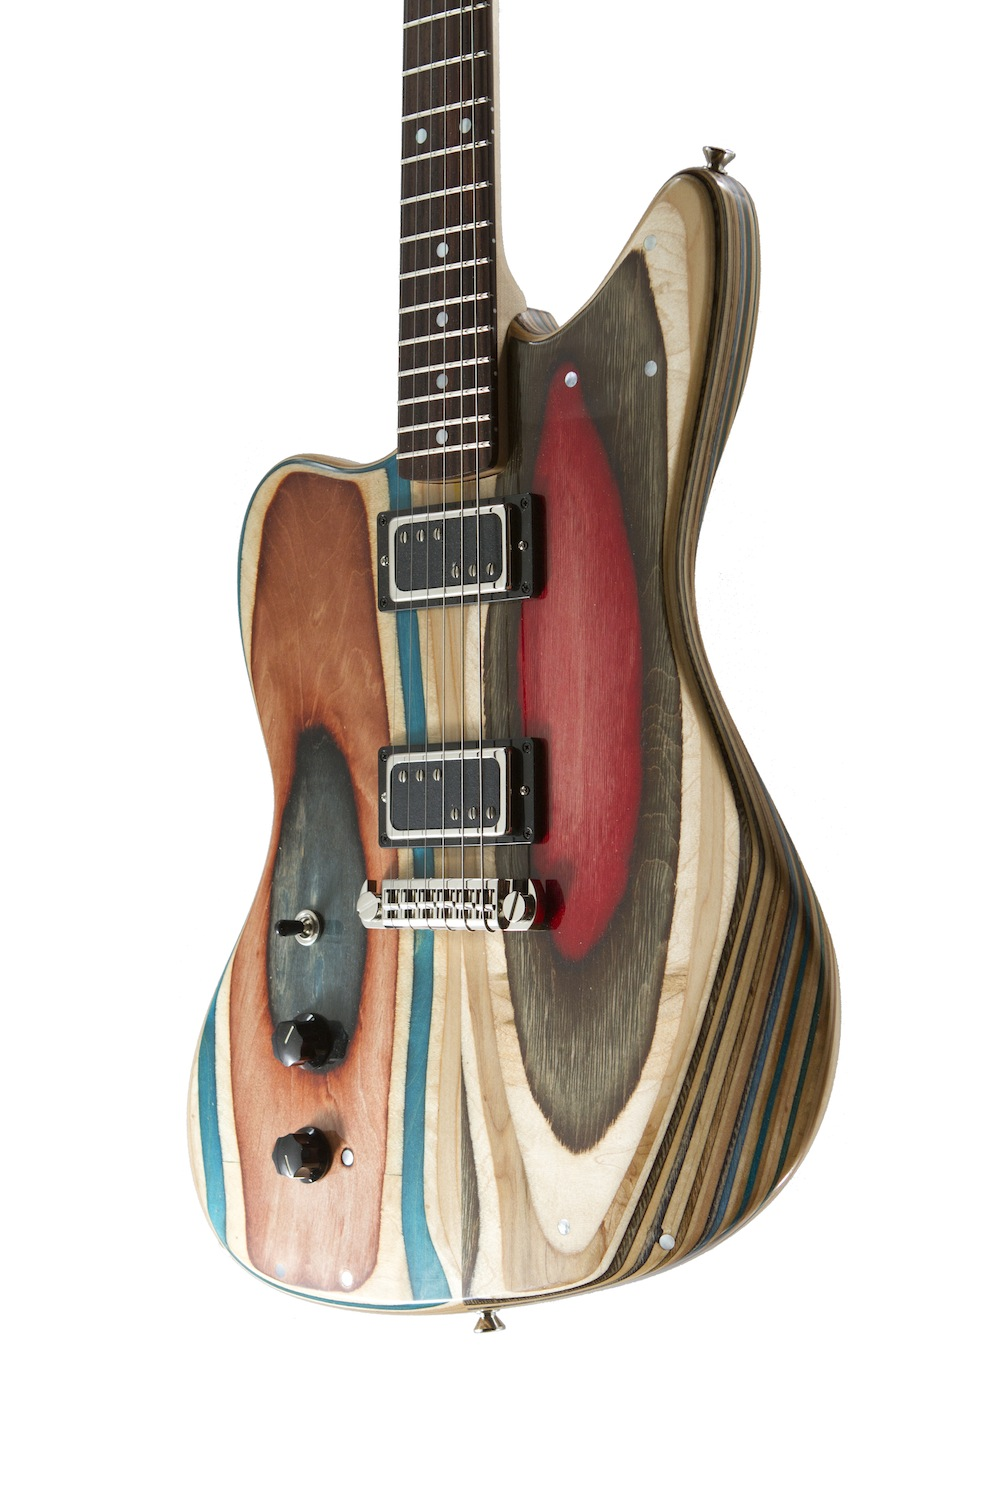 San Francisco-Based Company Builds Guitars From Recycled Skateboard Decks